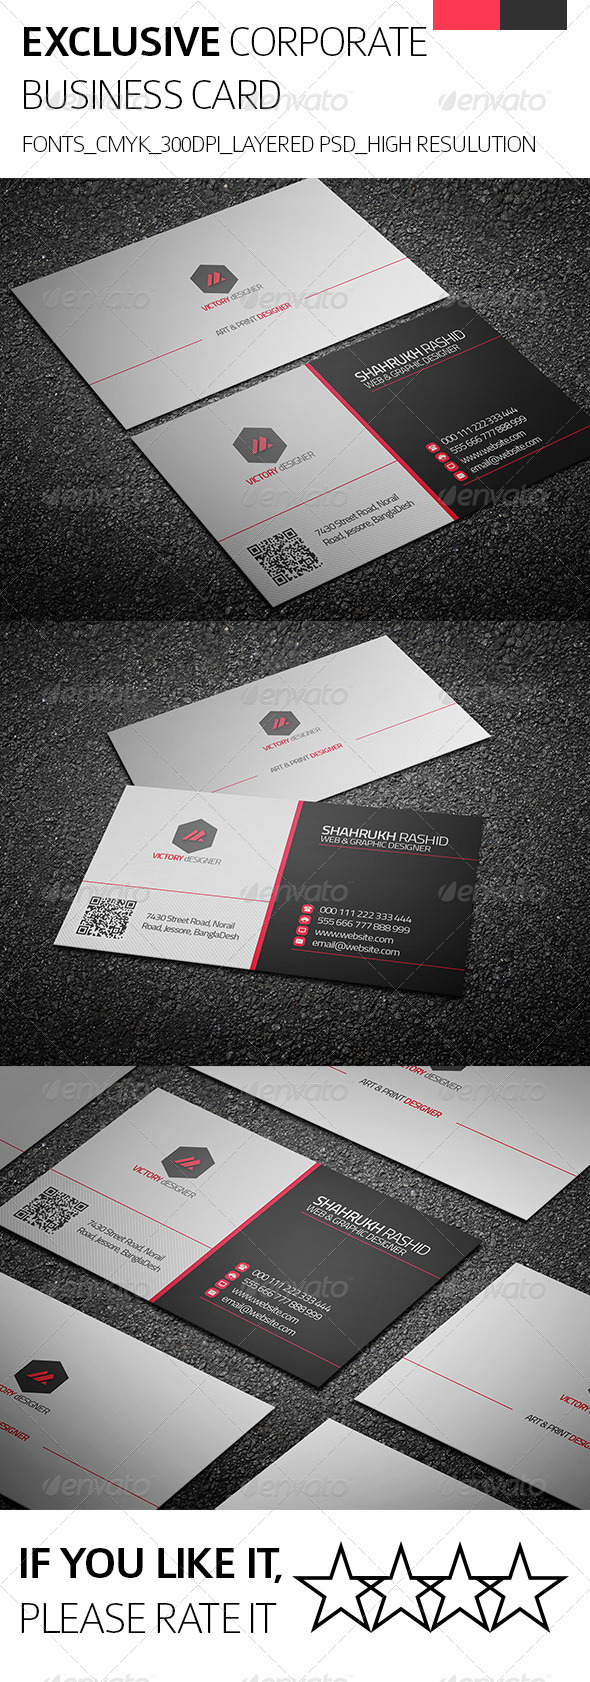 GraphicRiver Exclusive & Corporate Business Card 8234550